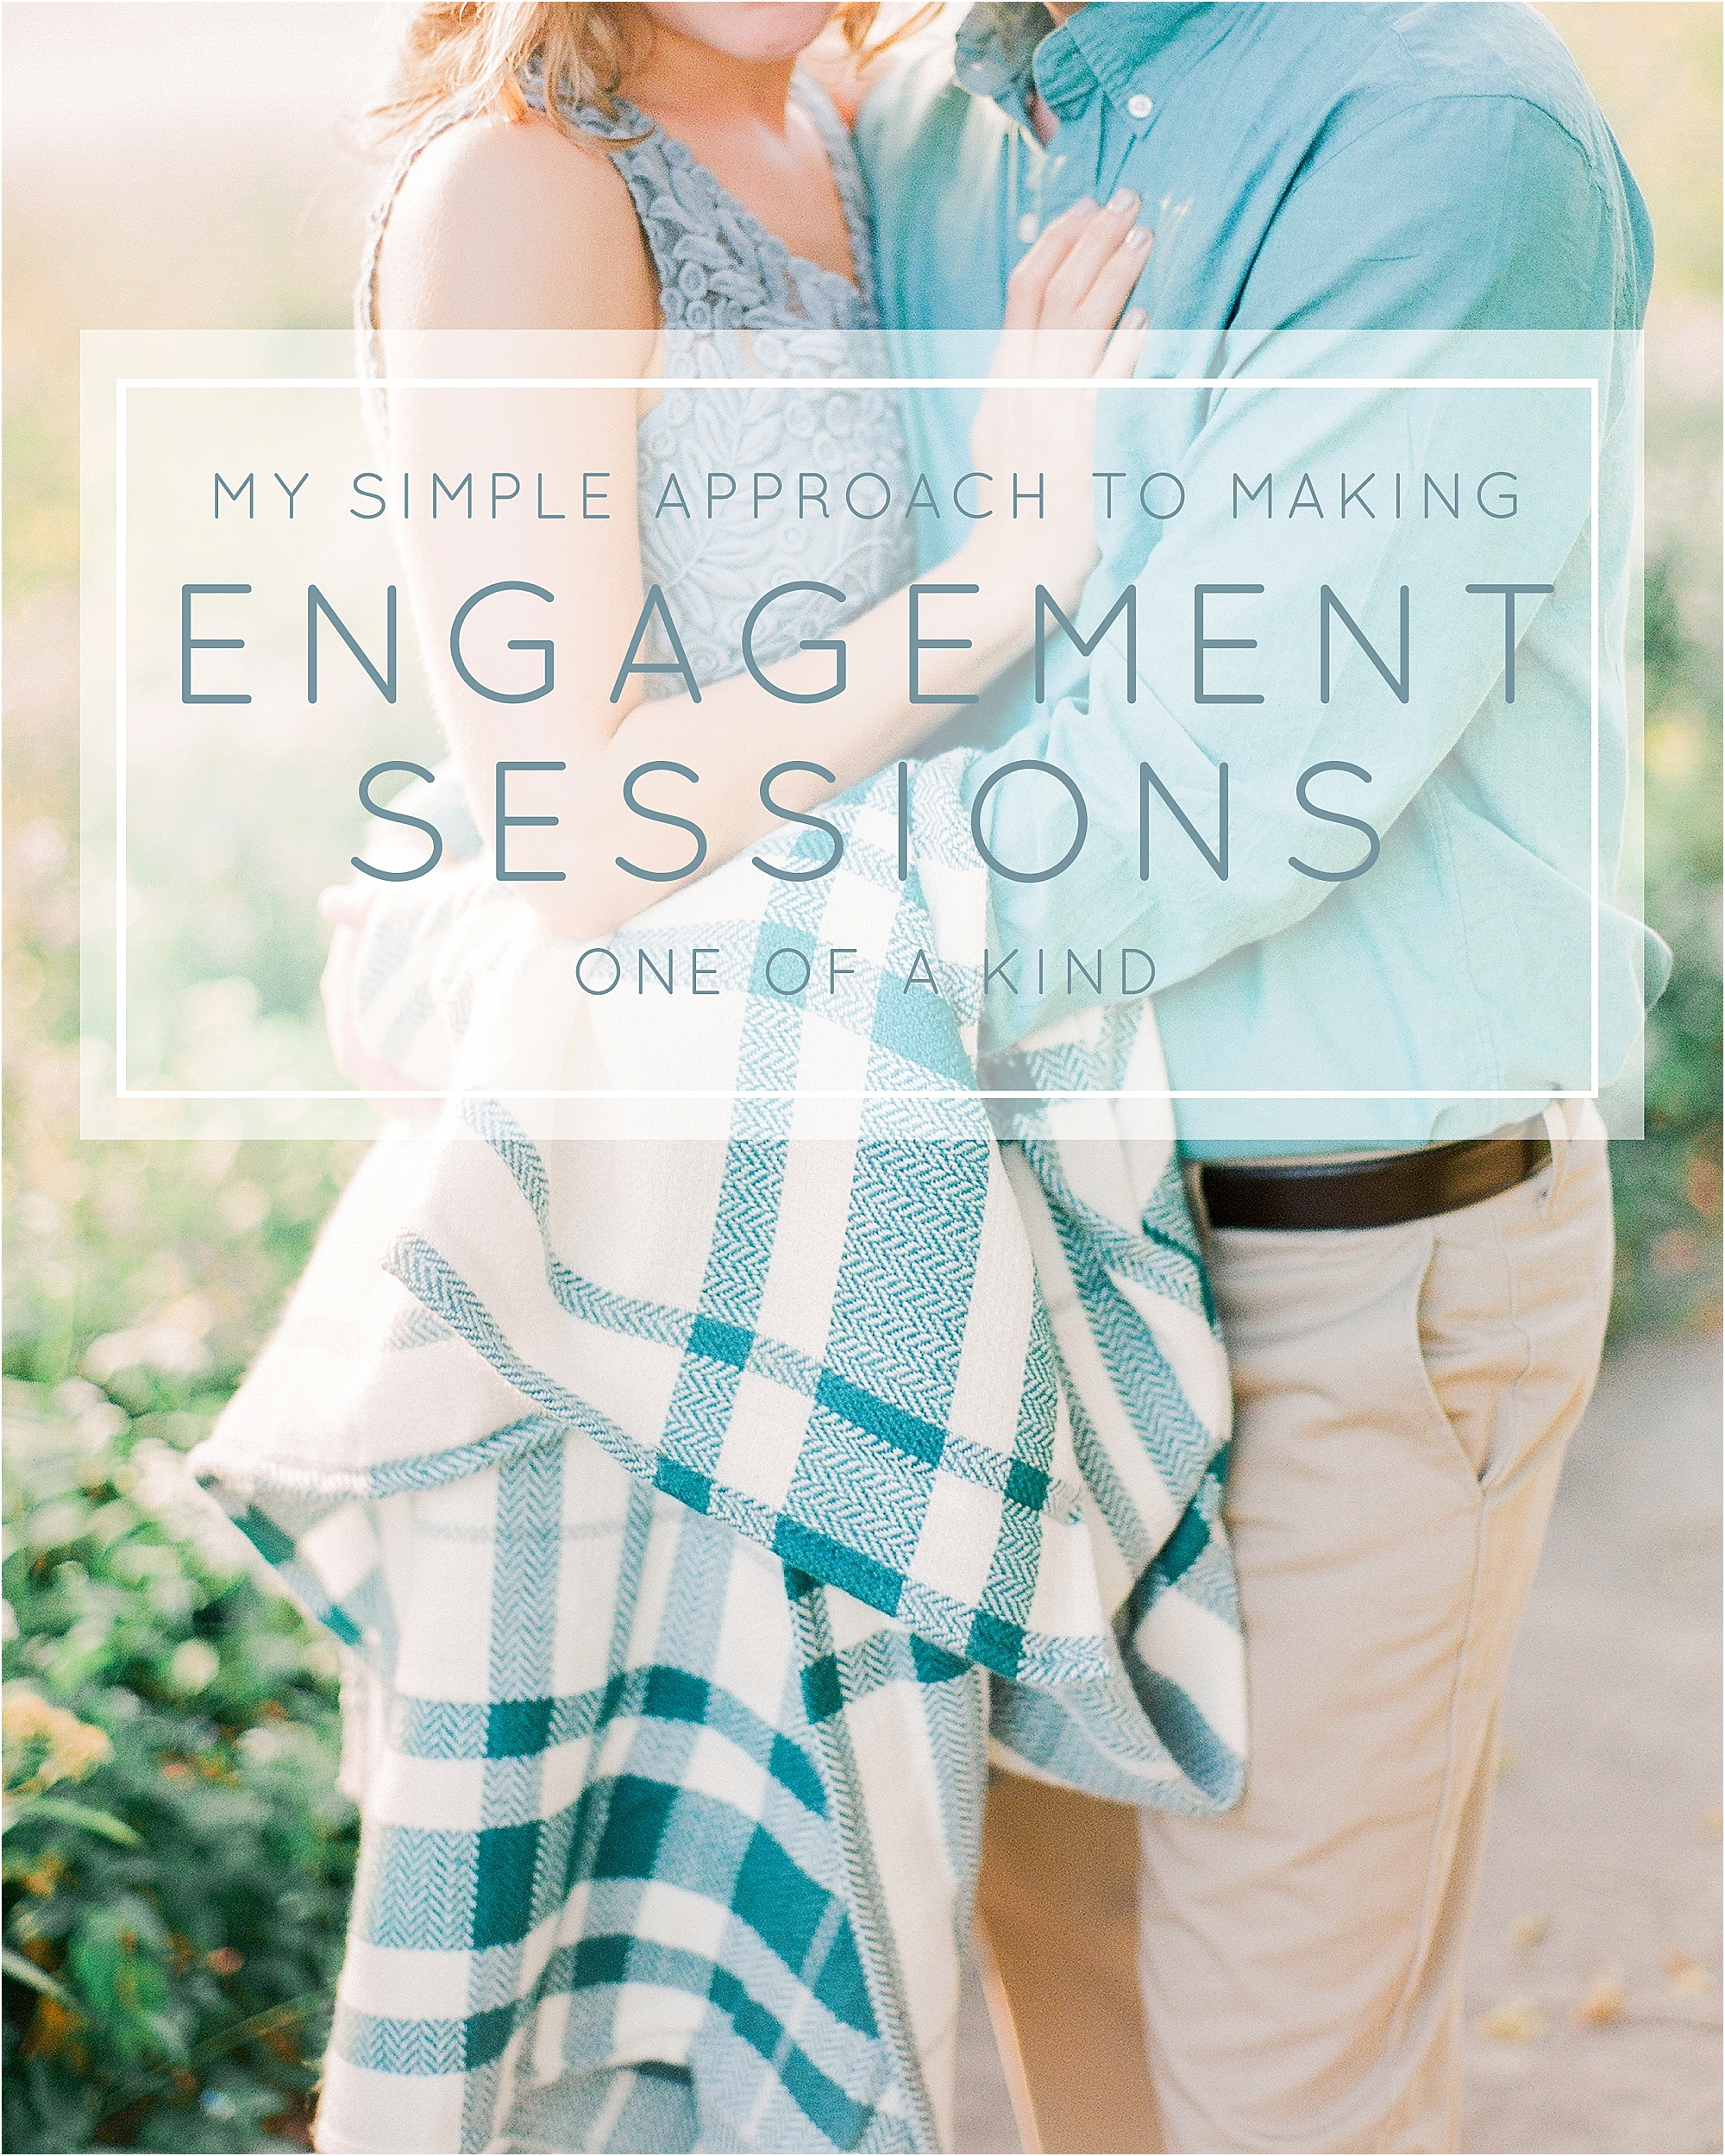 My Simple Approach to Making Each Engagement Session One of a Kind - The Jordan Brittley Blog